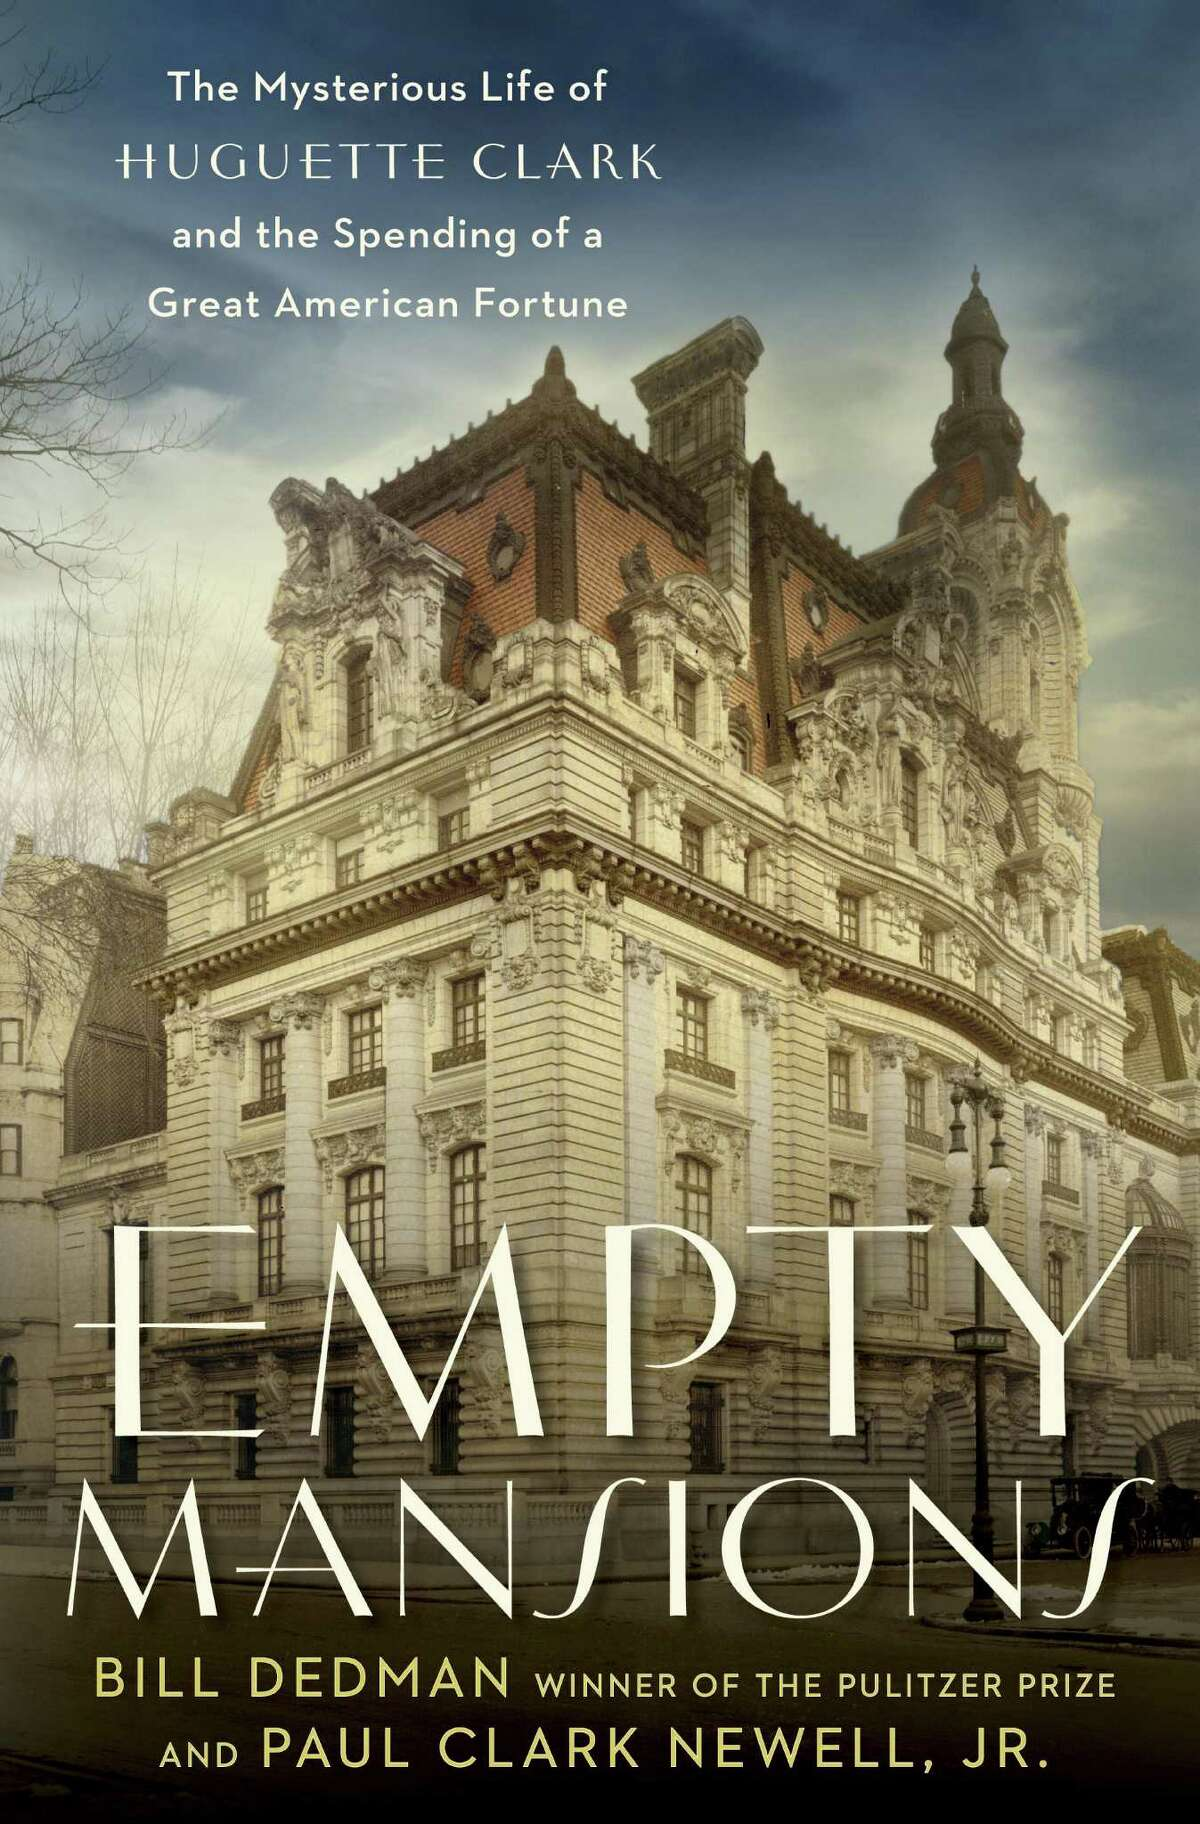 The cover of the book, Empty Mansions: The Mysterious Life of Huguette Clark and the Spending of a Great American Fortune by Bill Dedman and Paul Clark Newell, Jr.